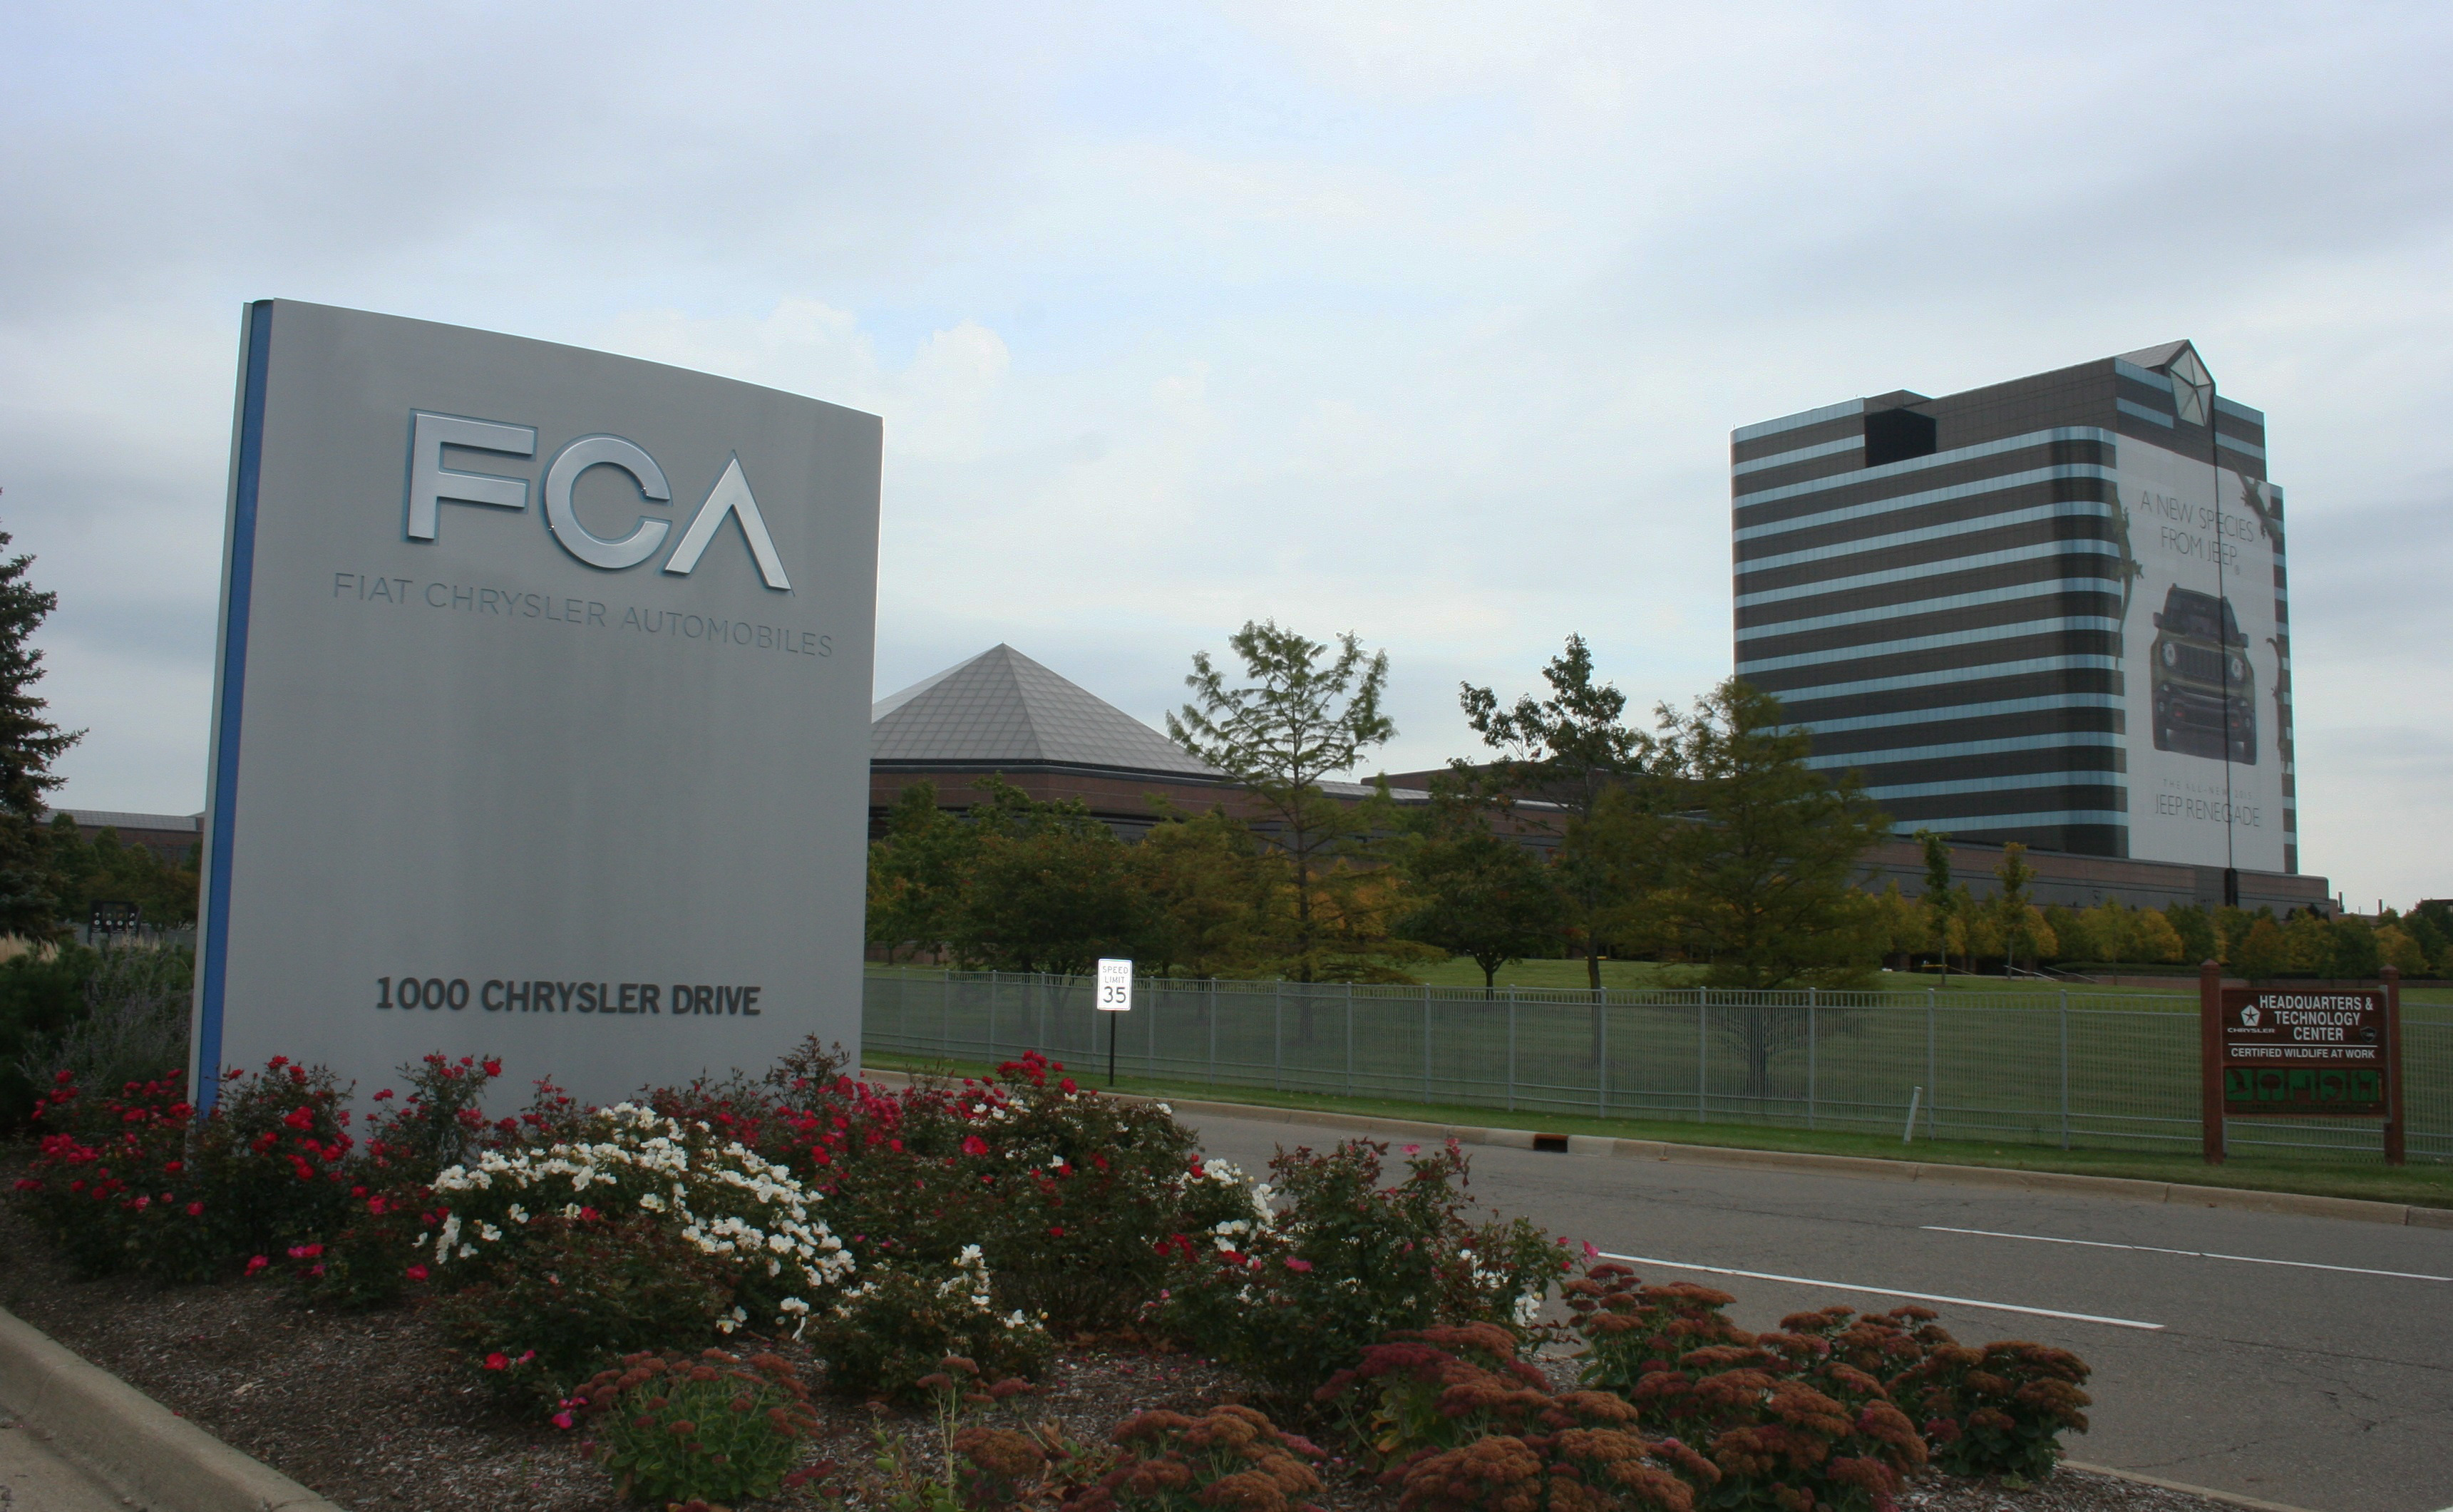 Fiat Chrysler eyes massive merger with Renault to create world's 3rd biggest automaker